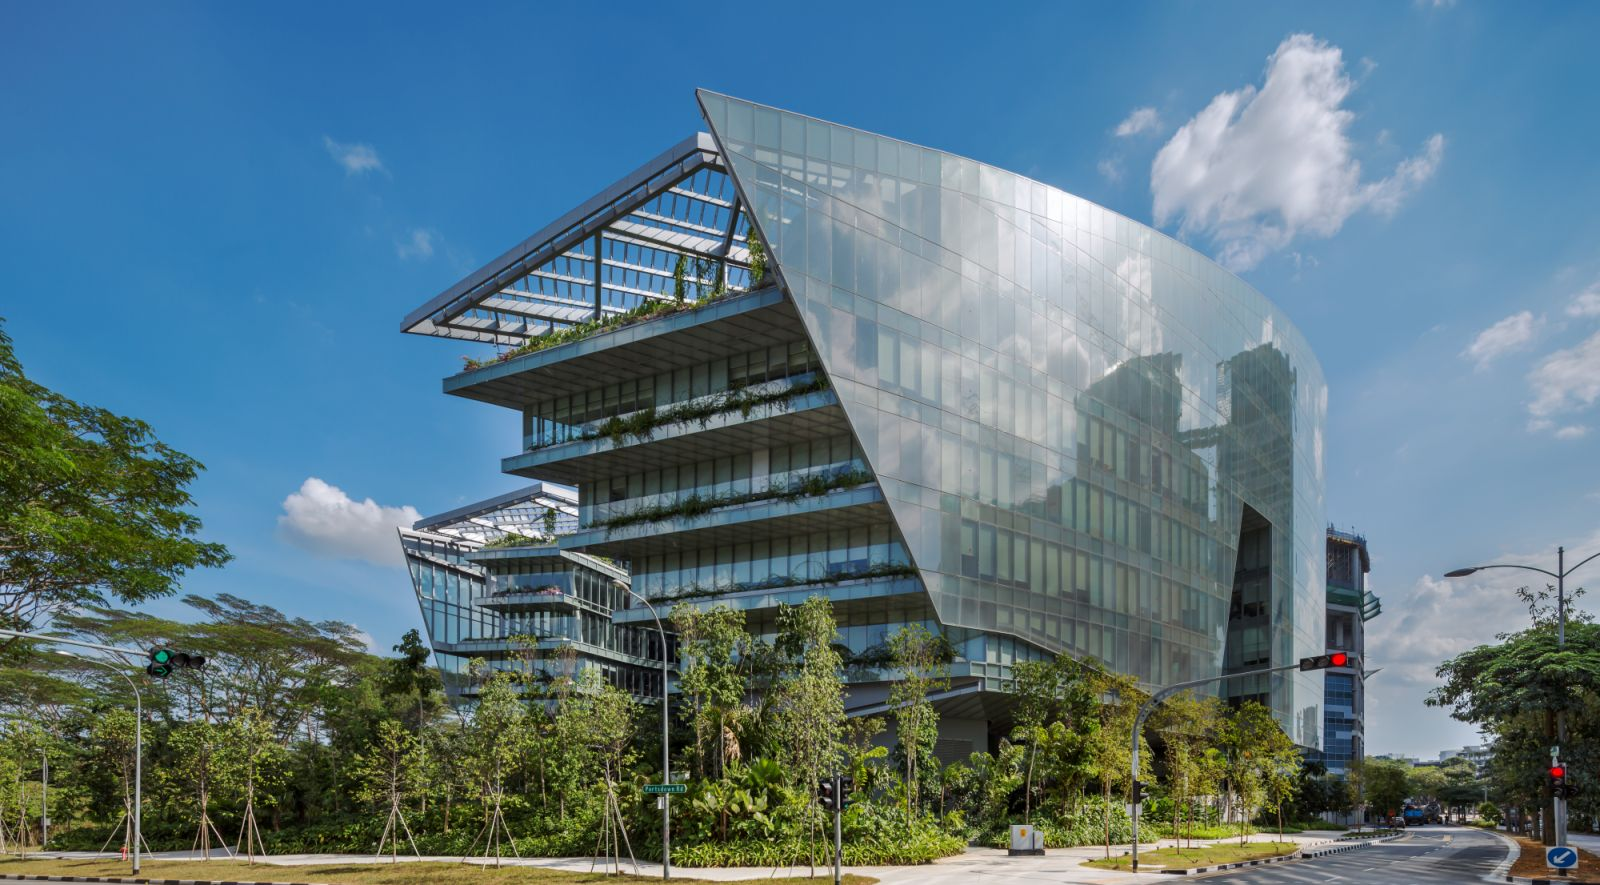 Sandcrawler receives honor award at 2017 aia international for Architecture 00